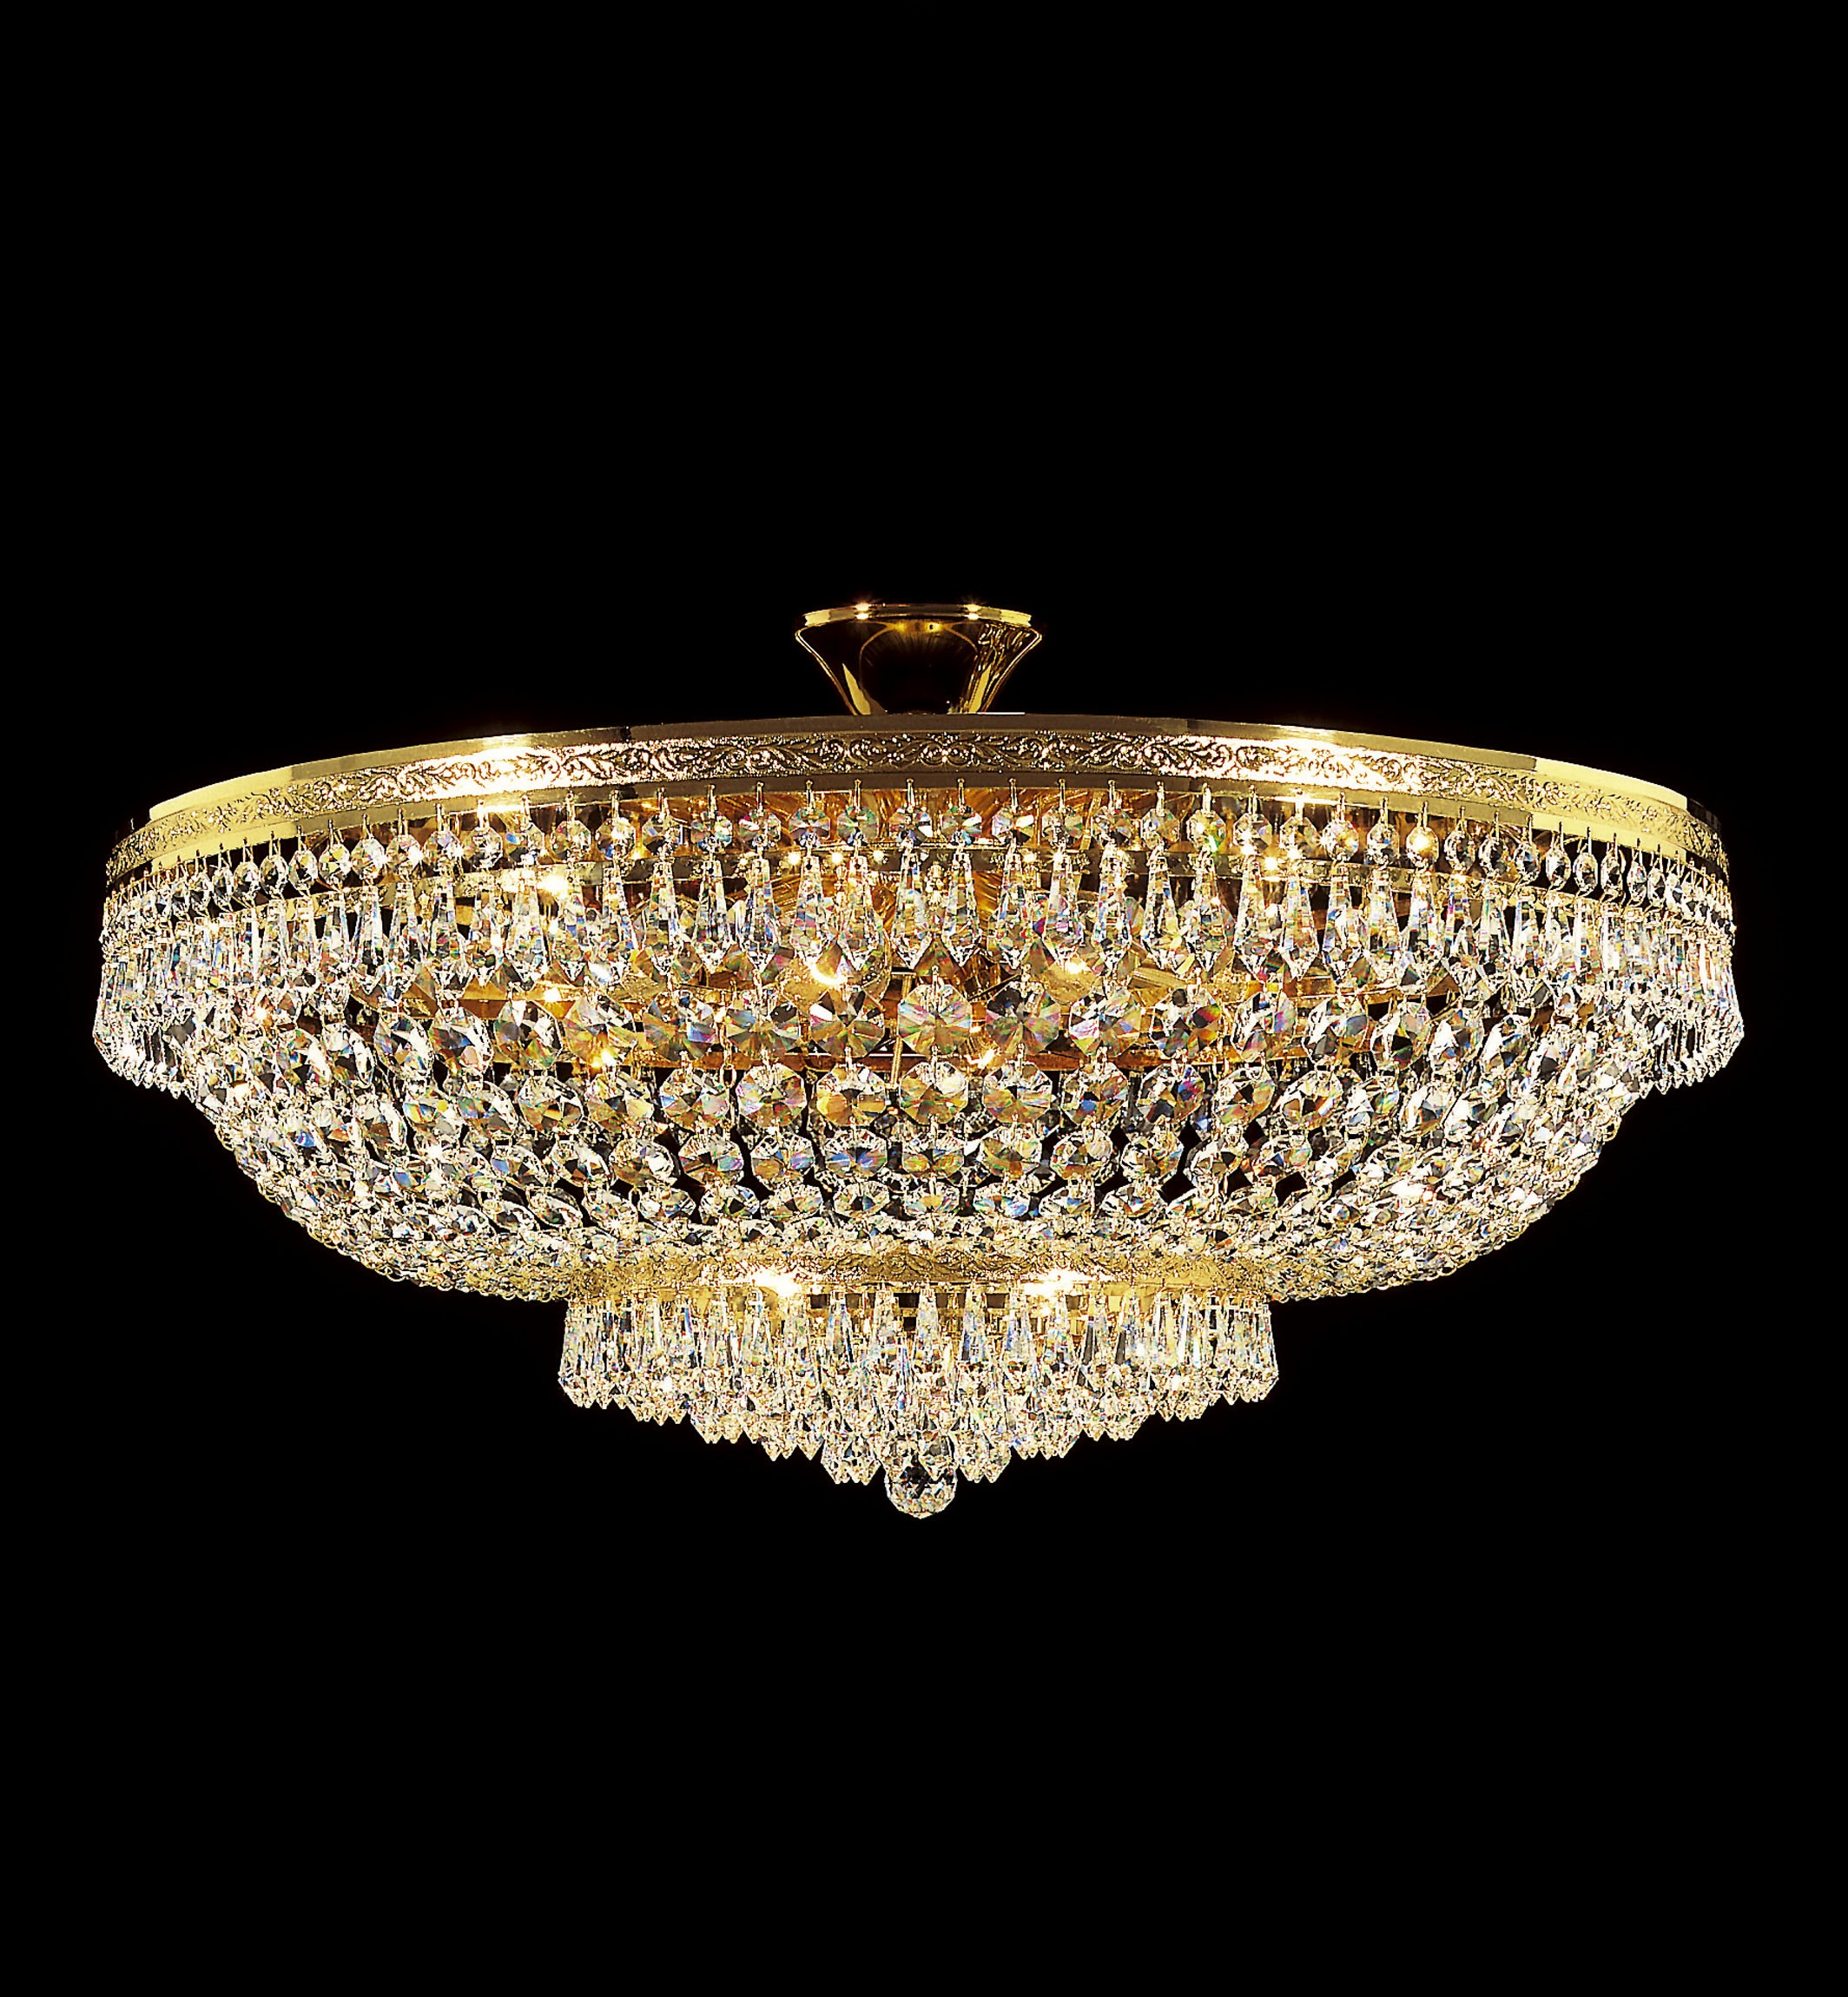 top ceiling bathroom crystal lights covers wood pendant chandelier ace flair light lamps